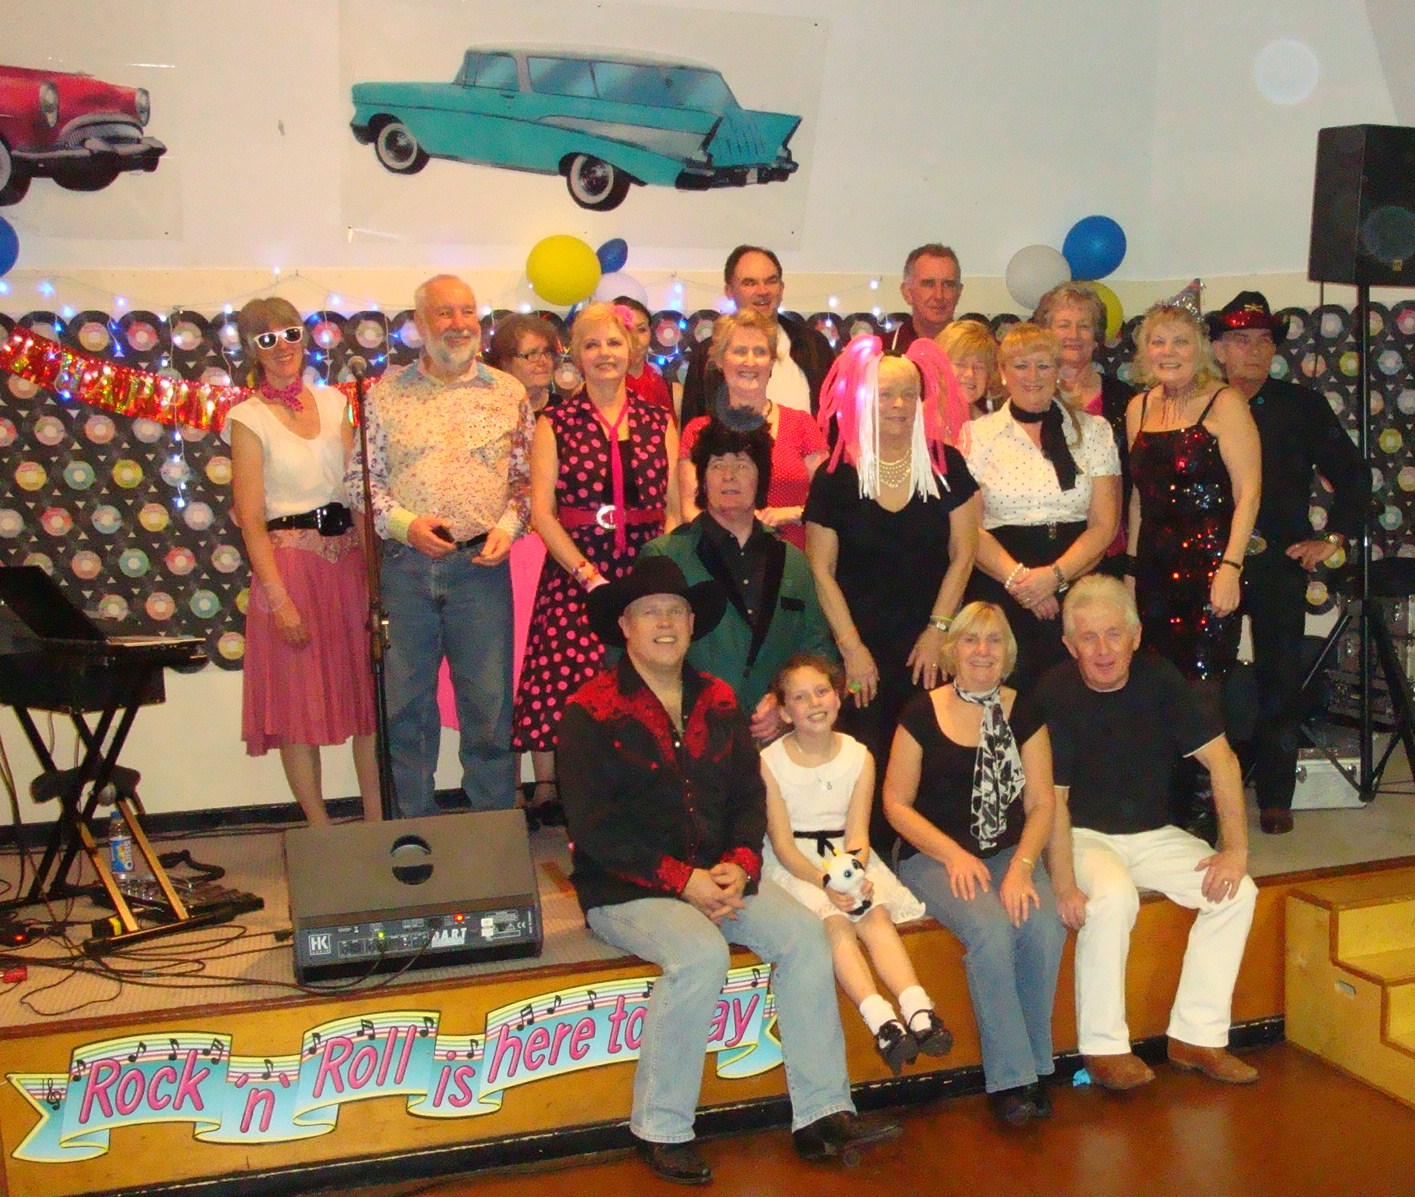 Alan Gregory with the Rock and Roll Guys & Girls - New Year 2011